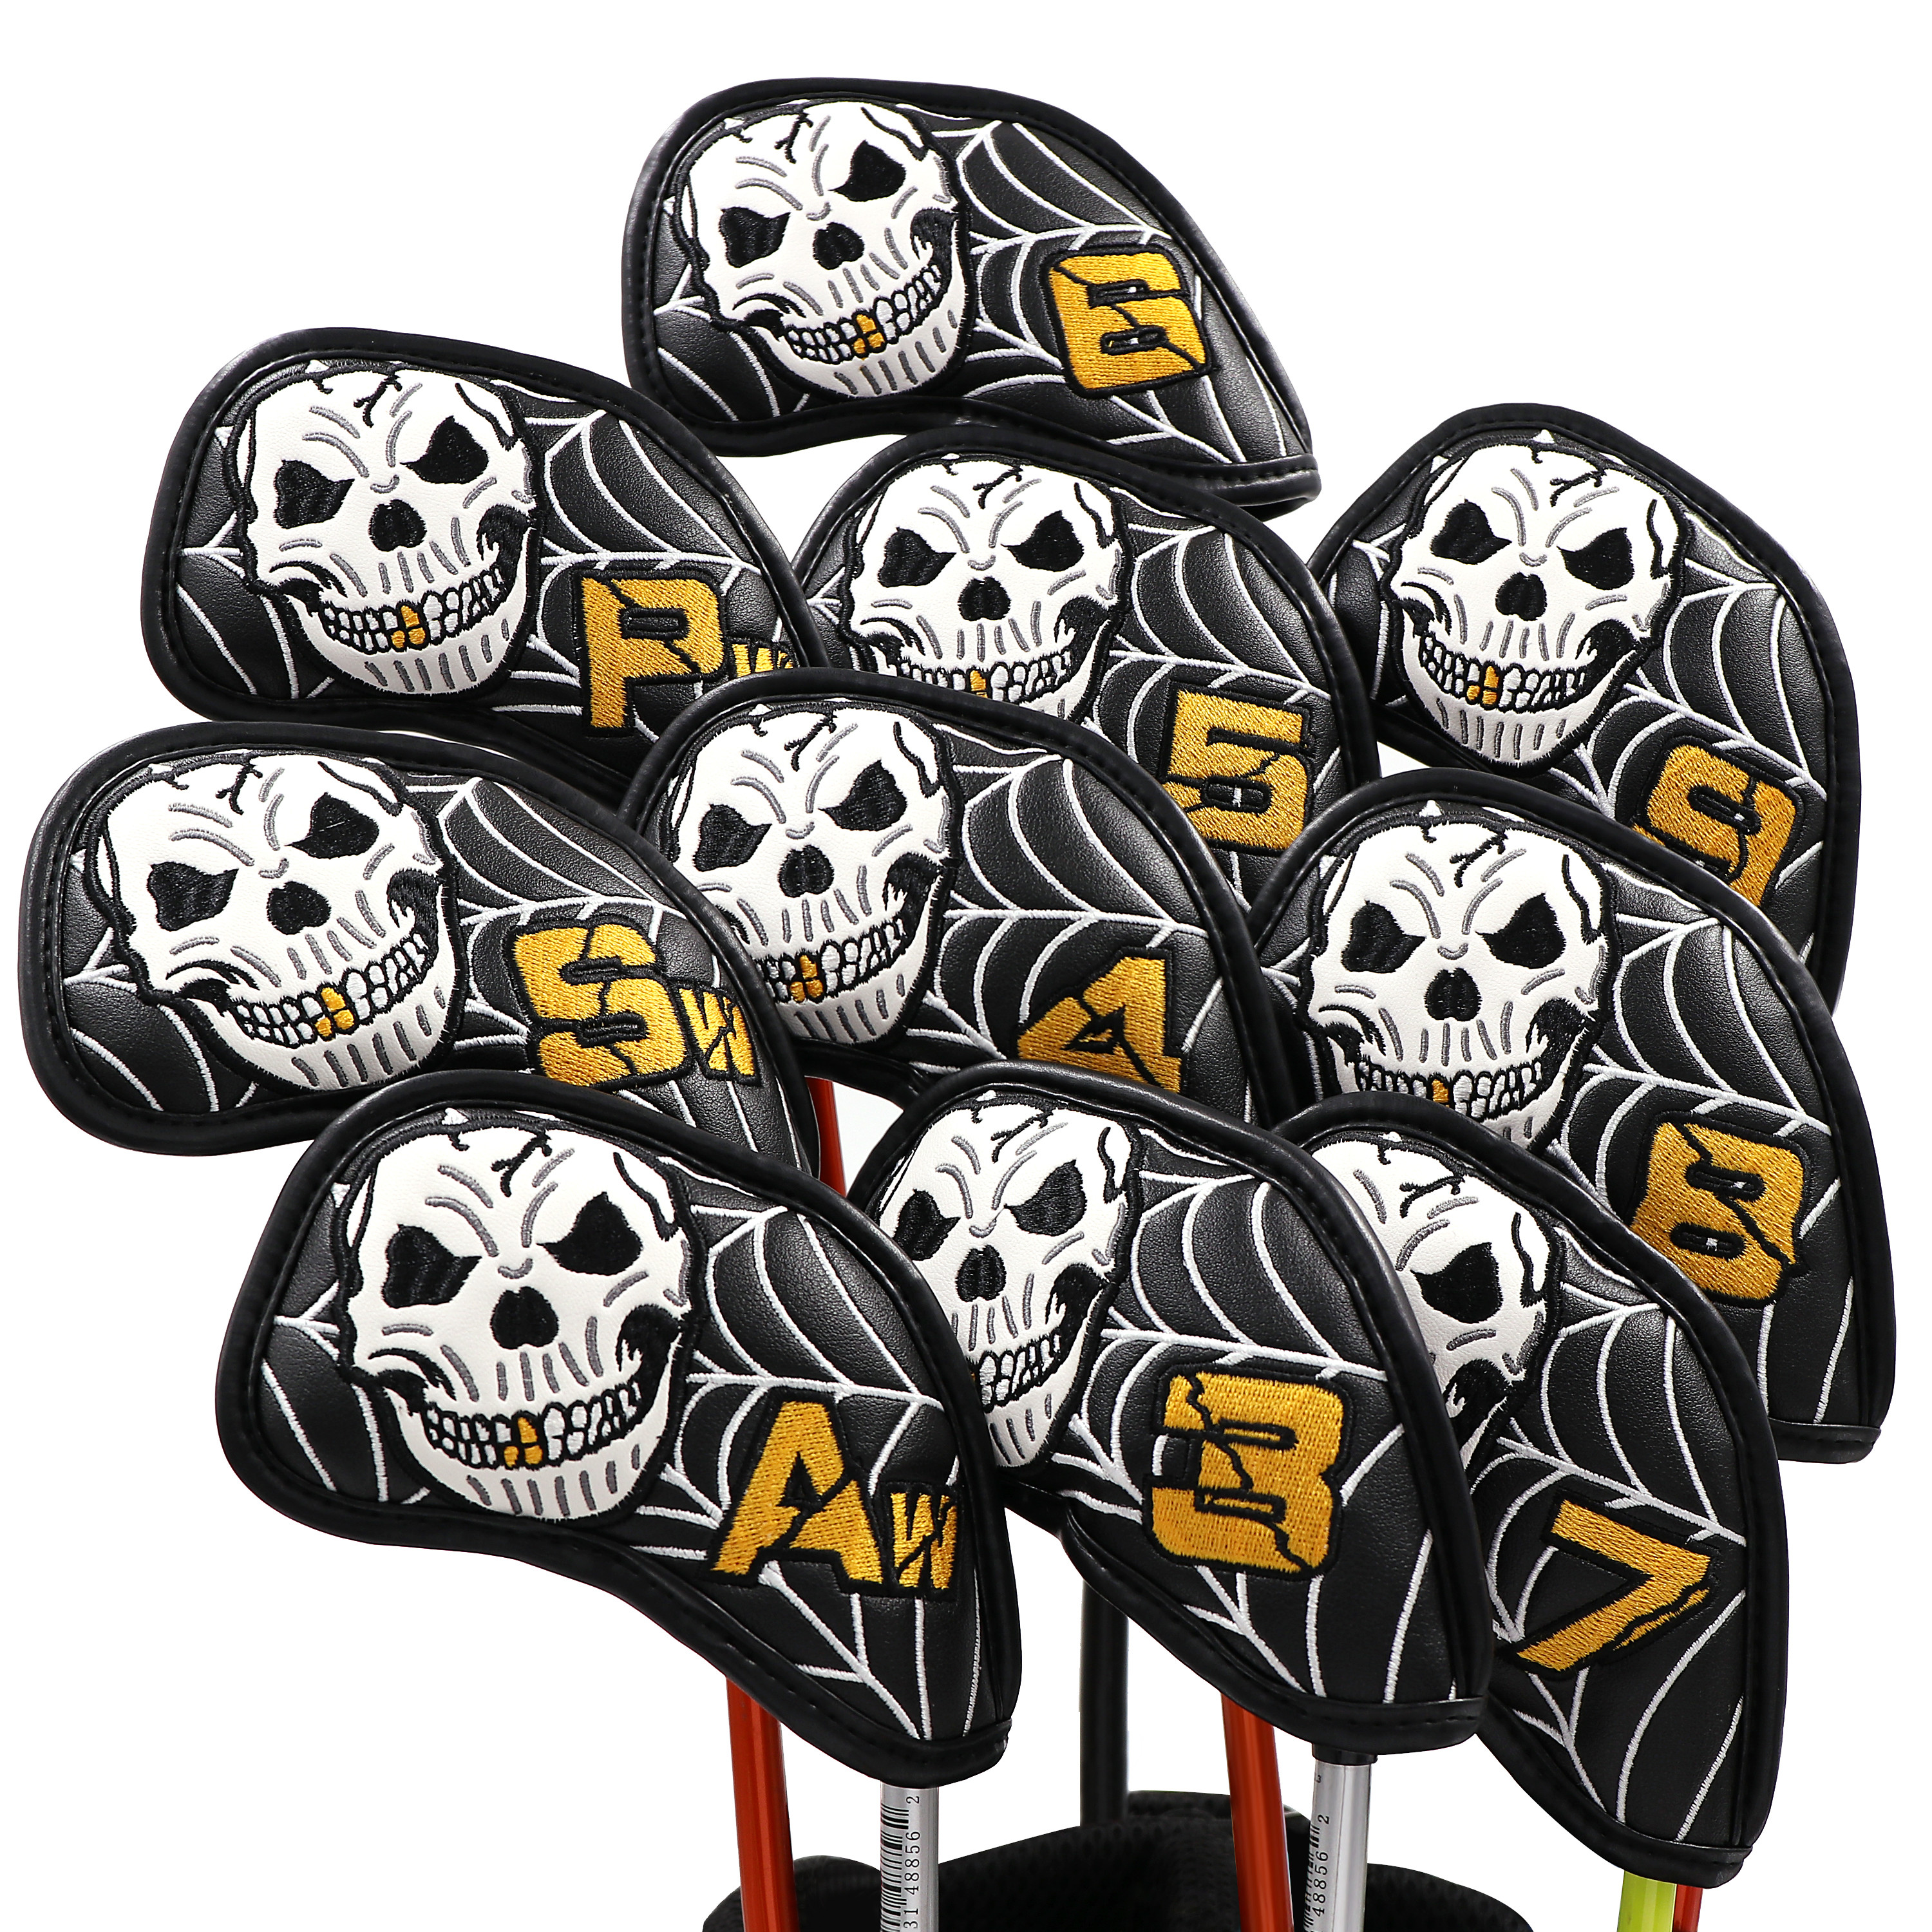 CHAMPKEY NEW Original Design Skull Golf Iron Headcover 10 PCS/SET High Quality Pu Leather Golf Head Cover